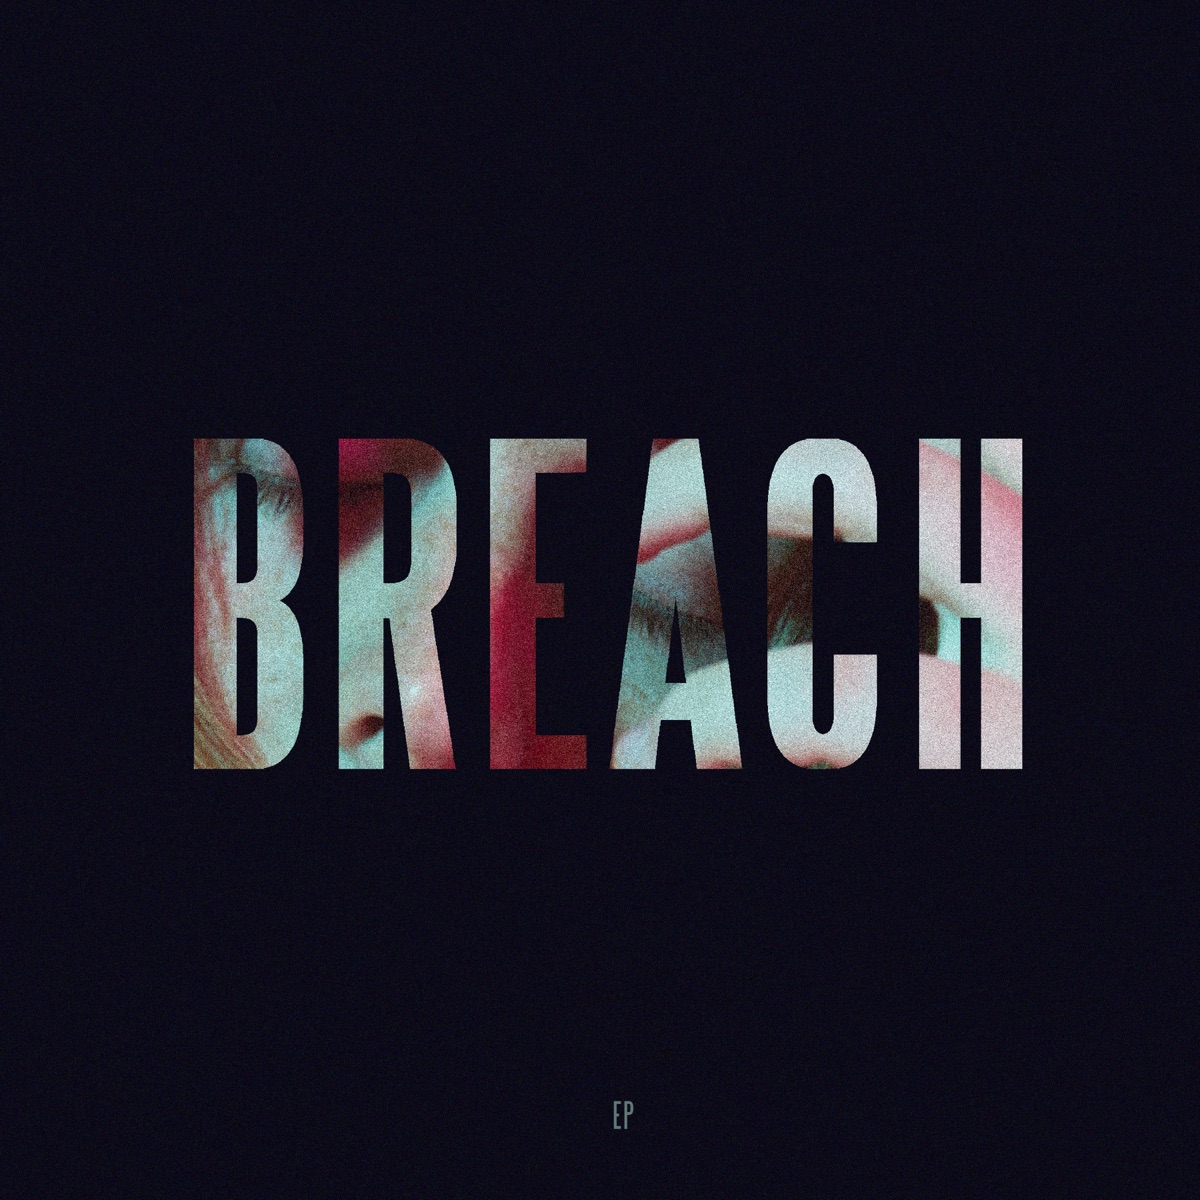 Breach - EP Lewis Capaldi CD cover